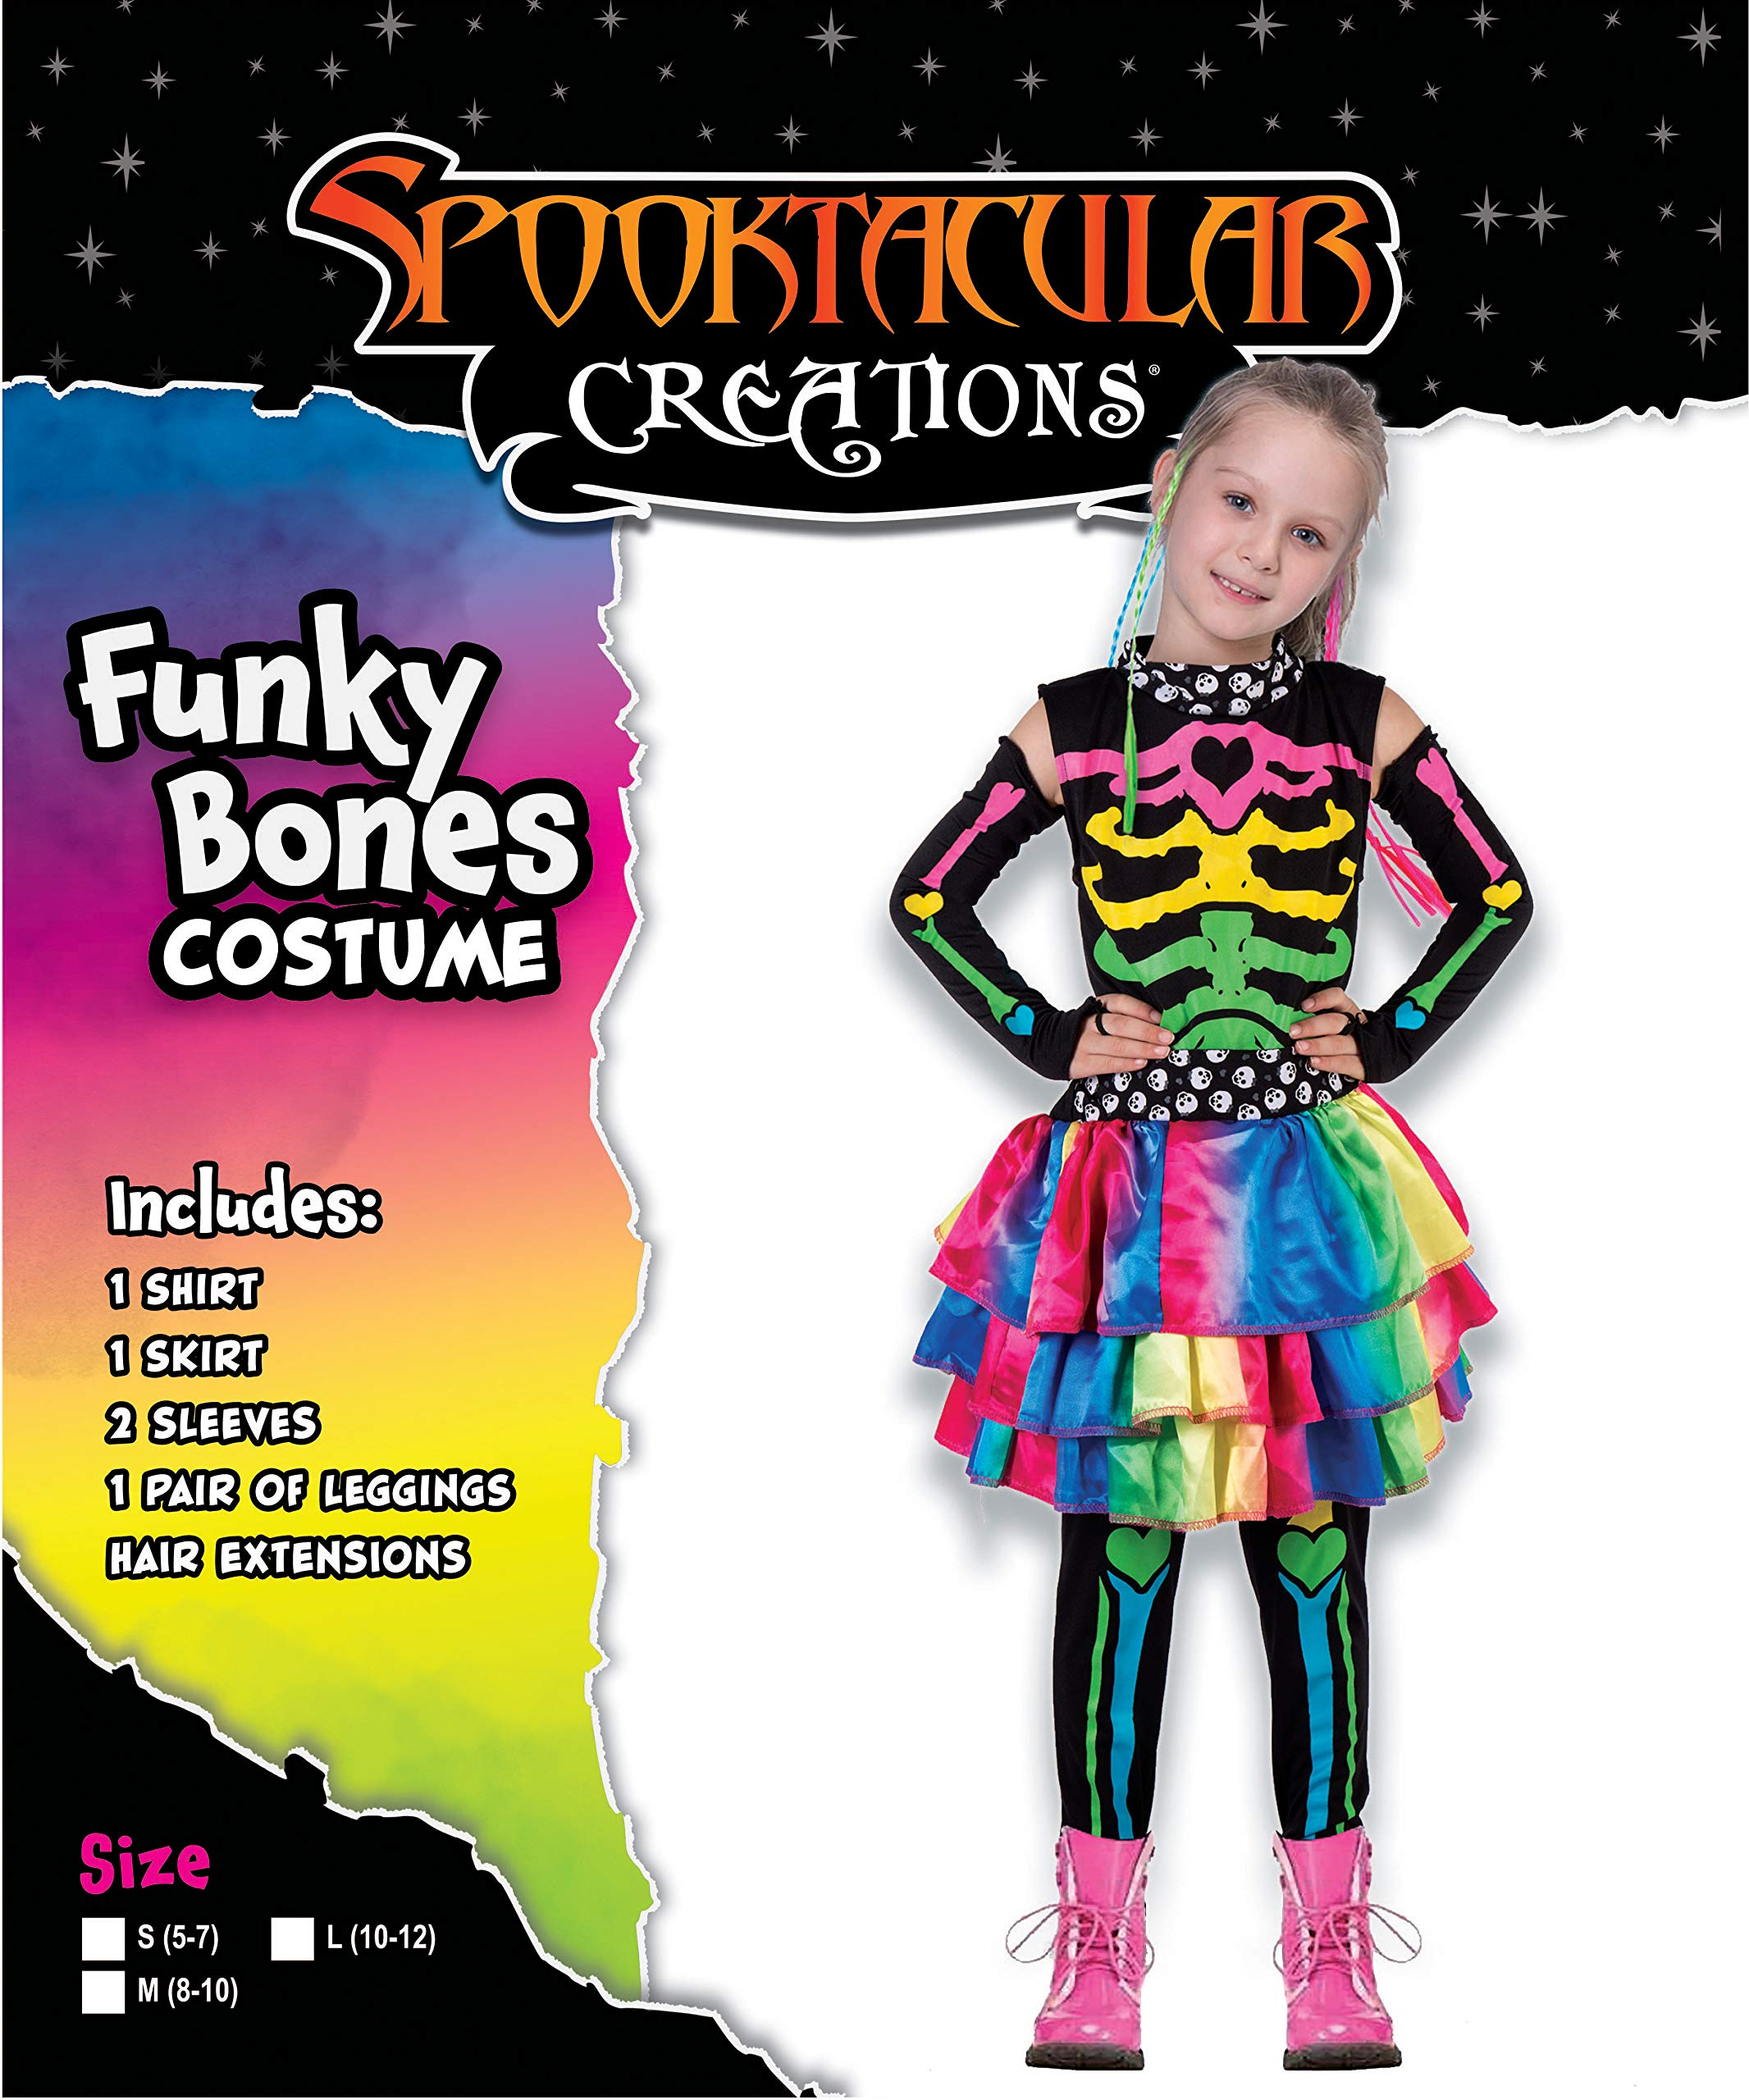 Funky Punky Bones Colorful Skeleton Deluxe Girls Costume Set with Hair Extensions for Halloween Costume Dress Up Parties. 4